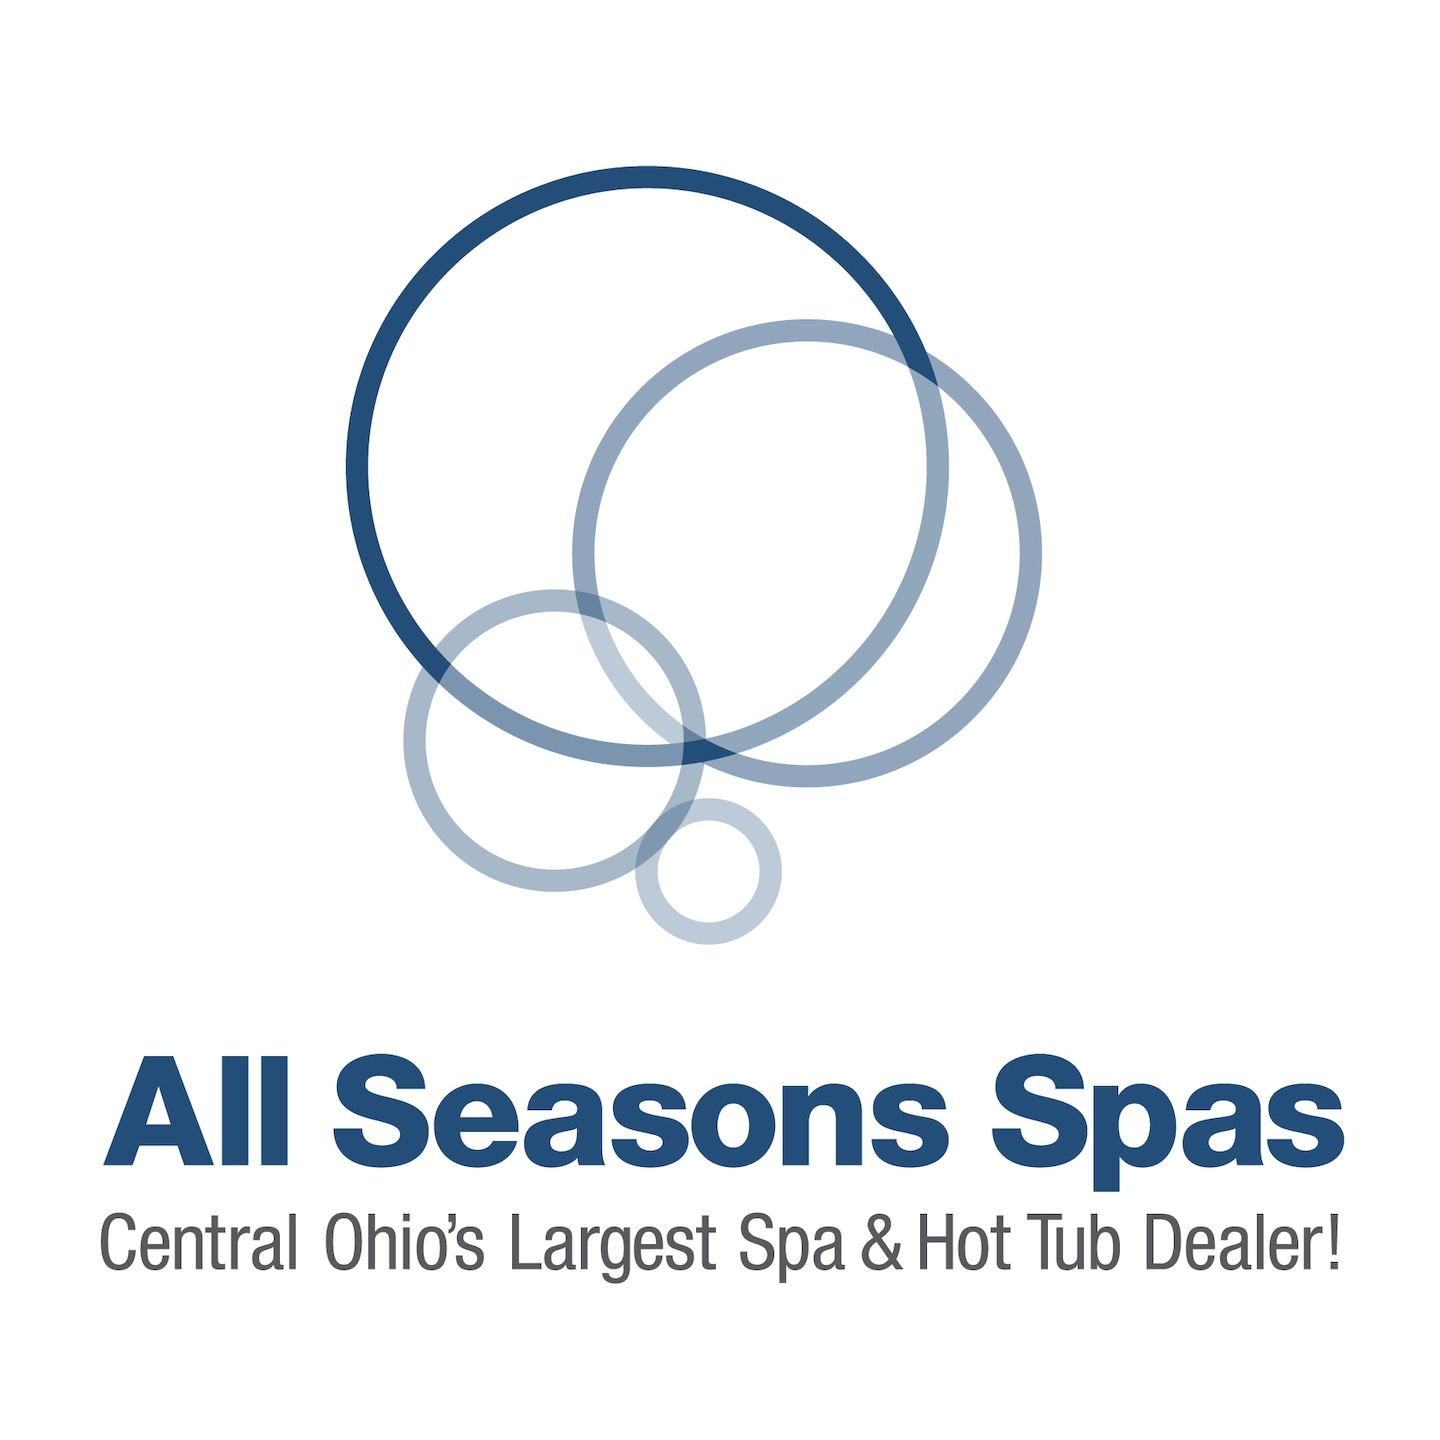 All Seasons Spas